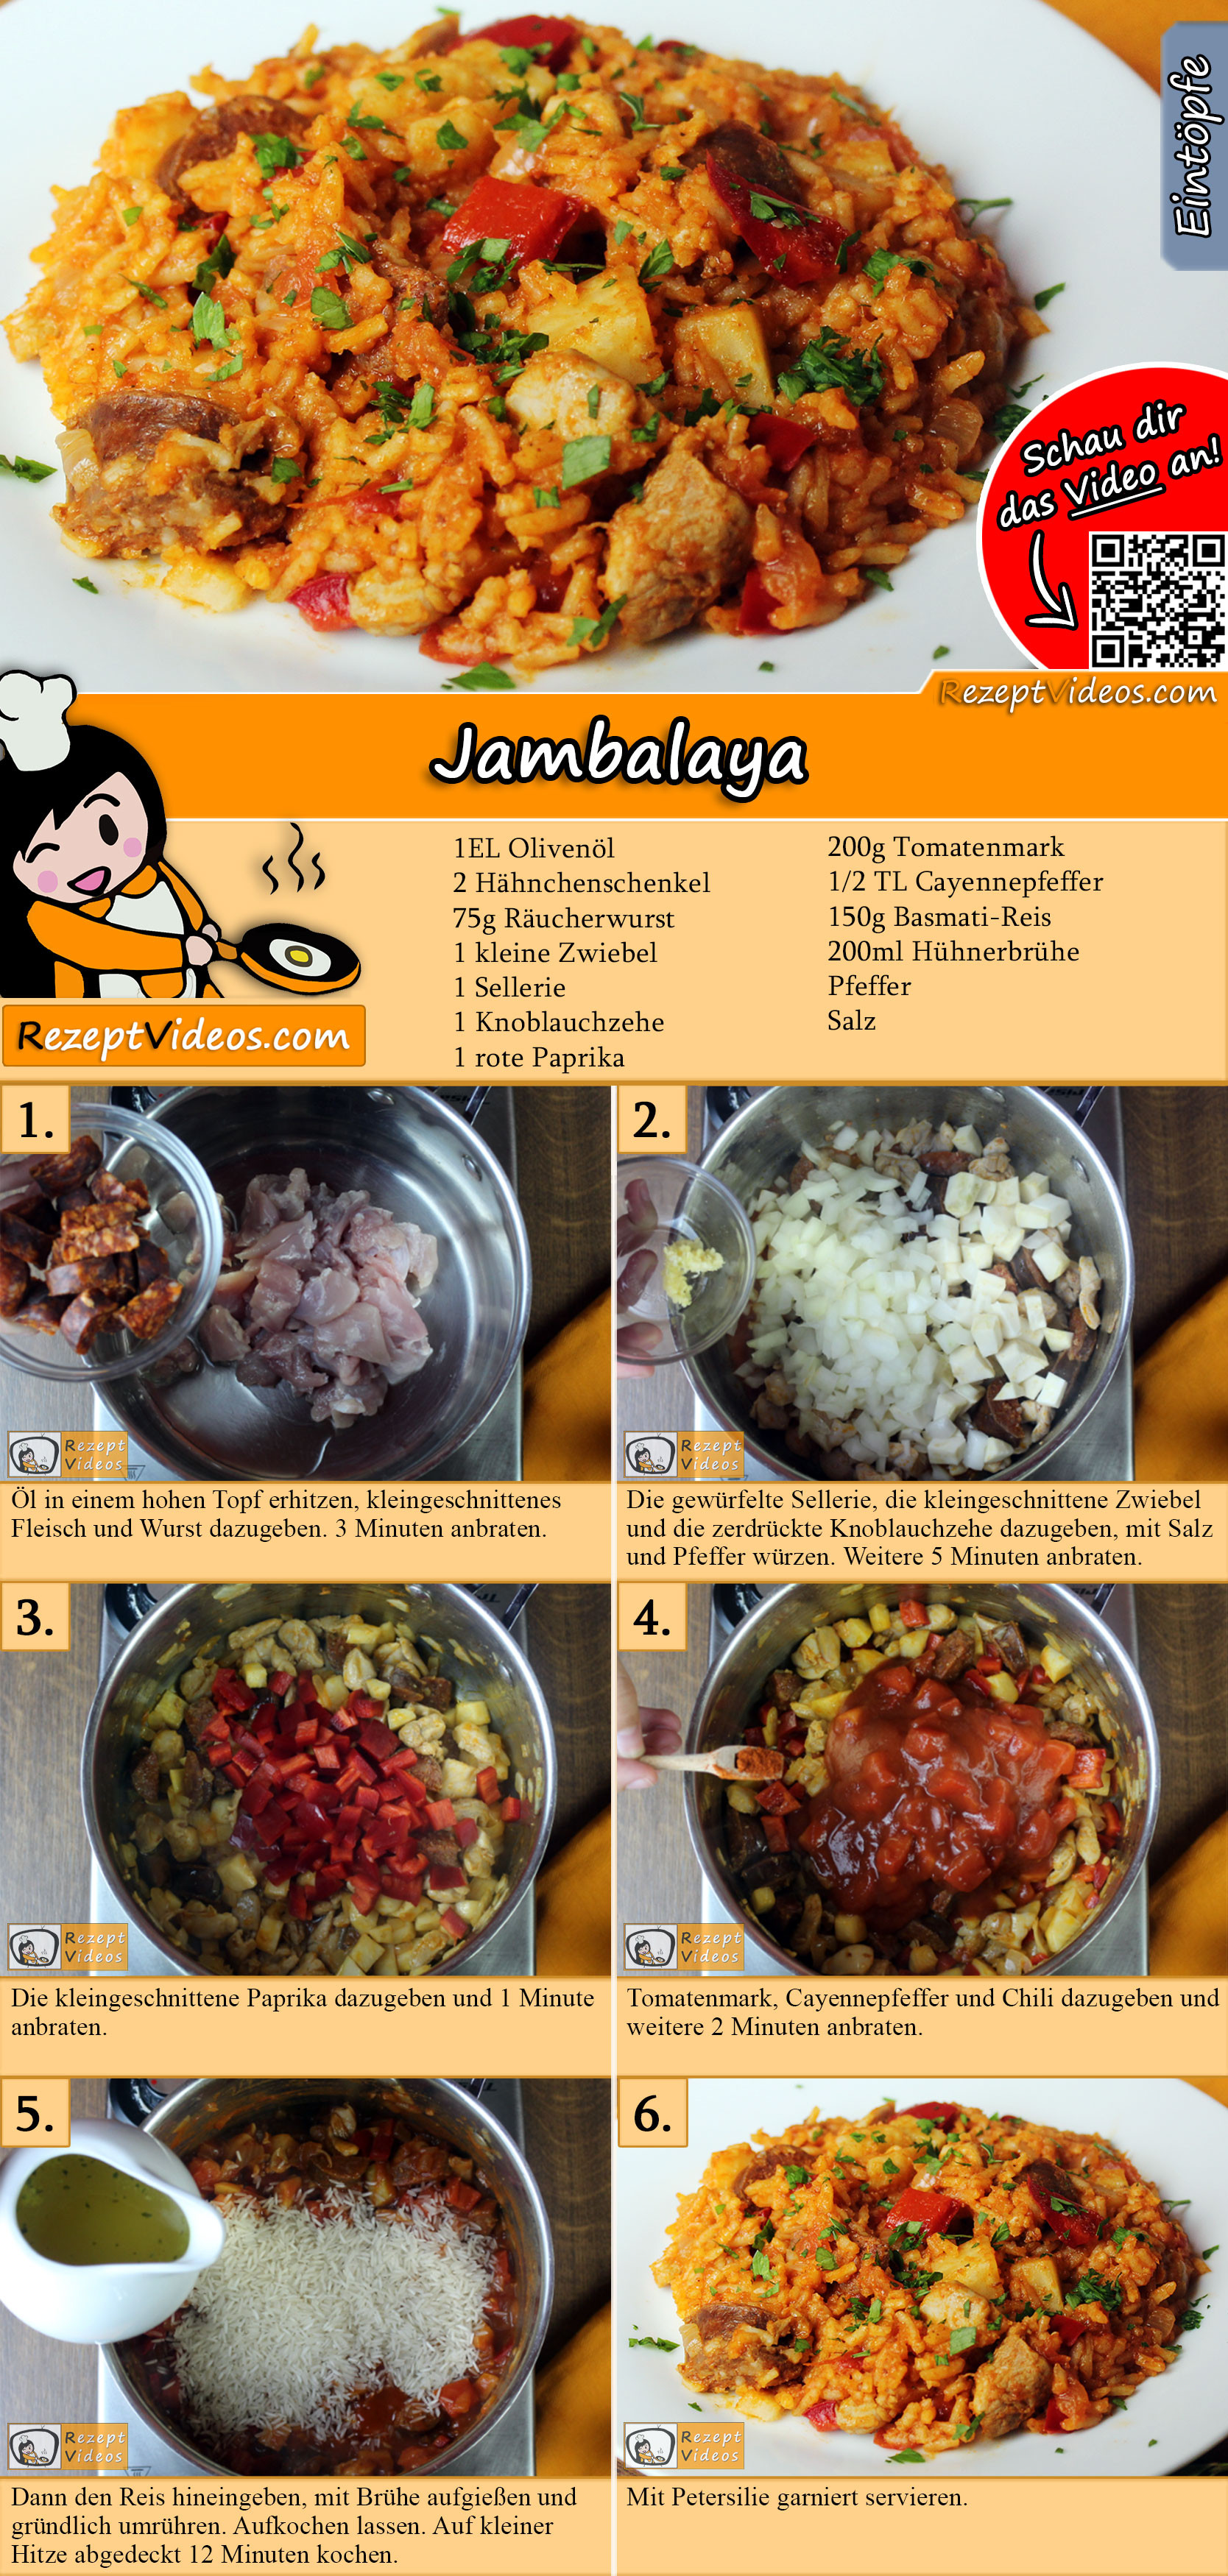 Jambalaya Rezept mit Video